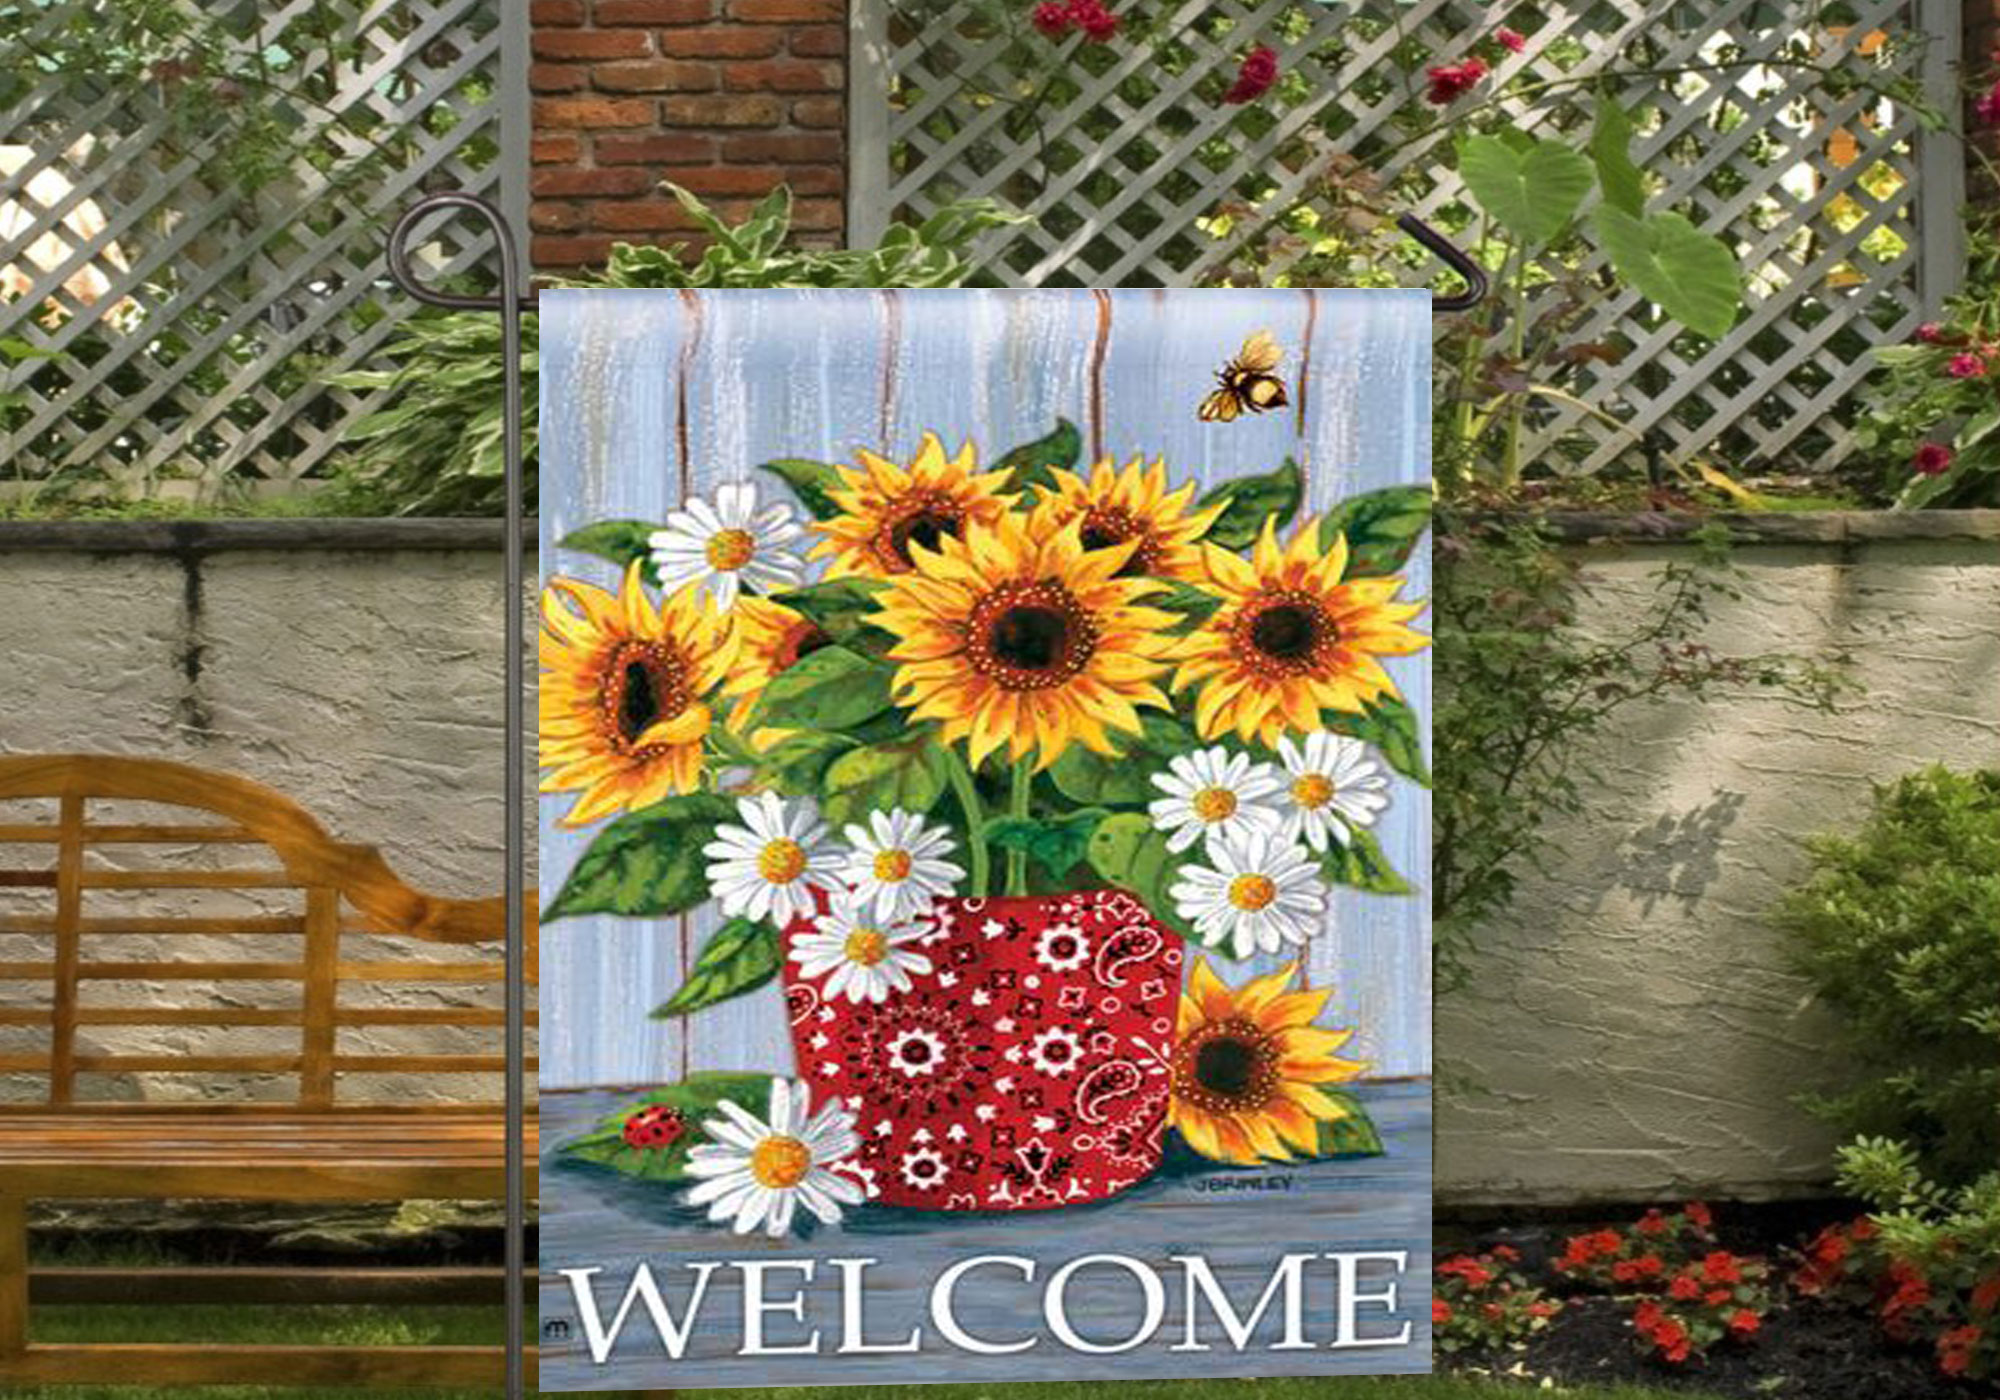 bandana-sunflowers-garden-flag.jpg